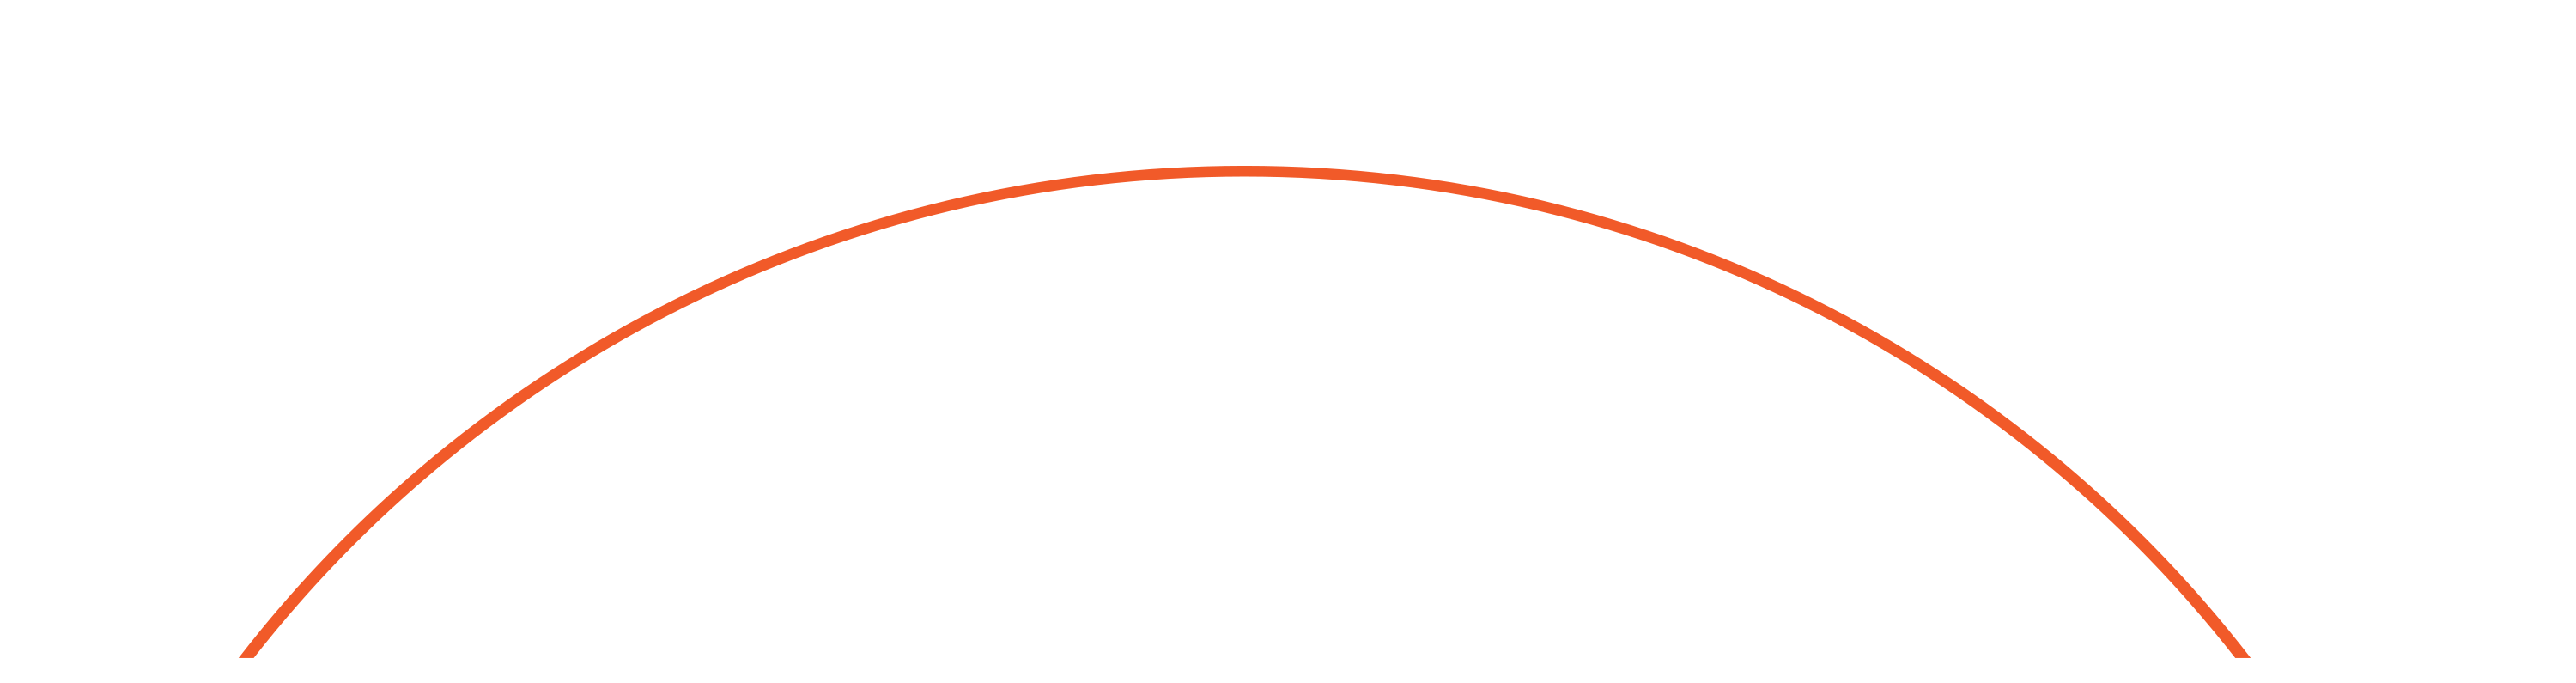 Terres-Neuves-Logo-arc-orange